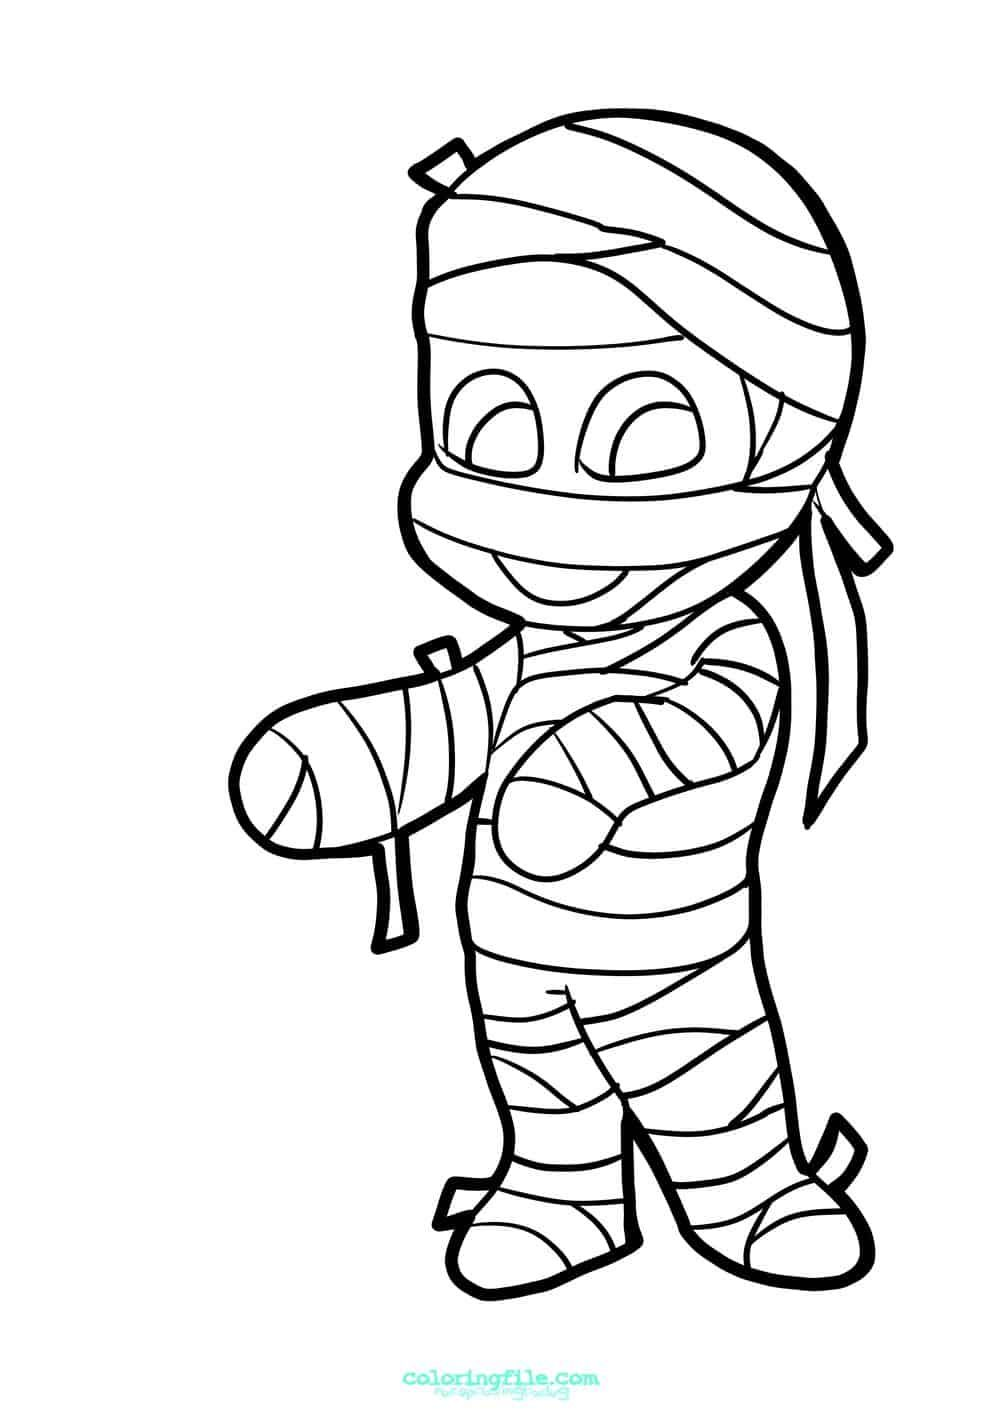 Halloween Mummy Coloring Pages In 2020 Halloween Coloring Pages Halloween Coloring Halloween Coloring Pages Printable